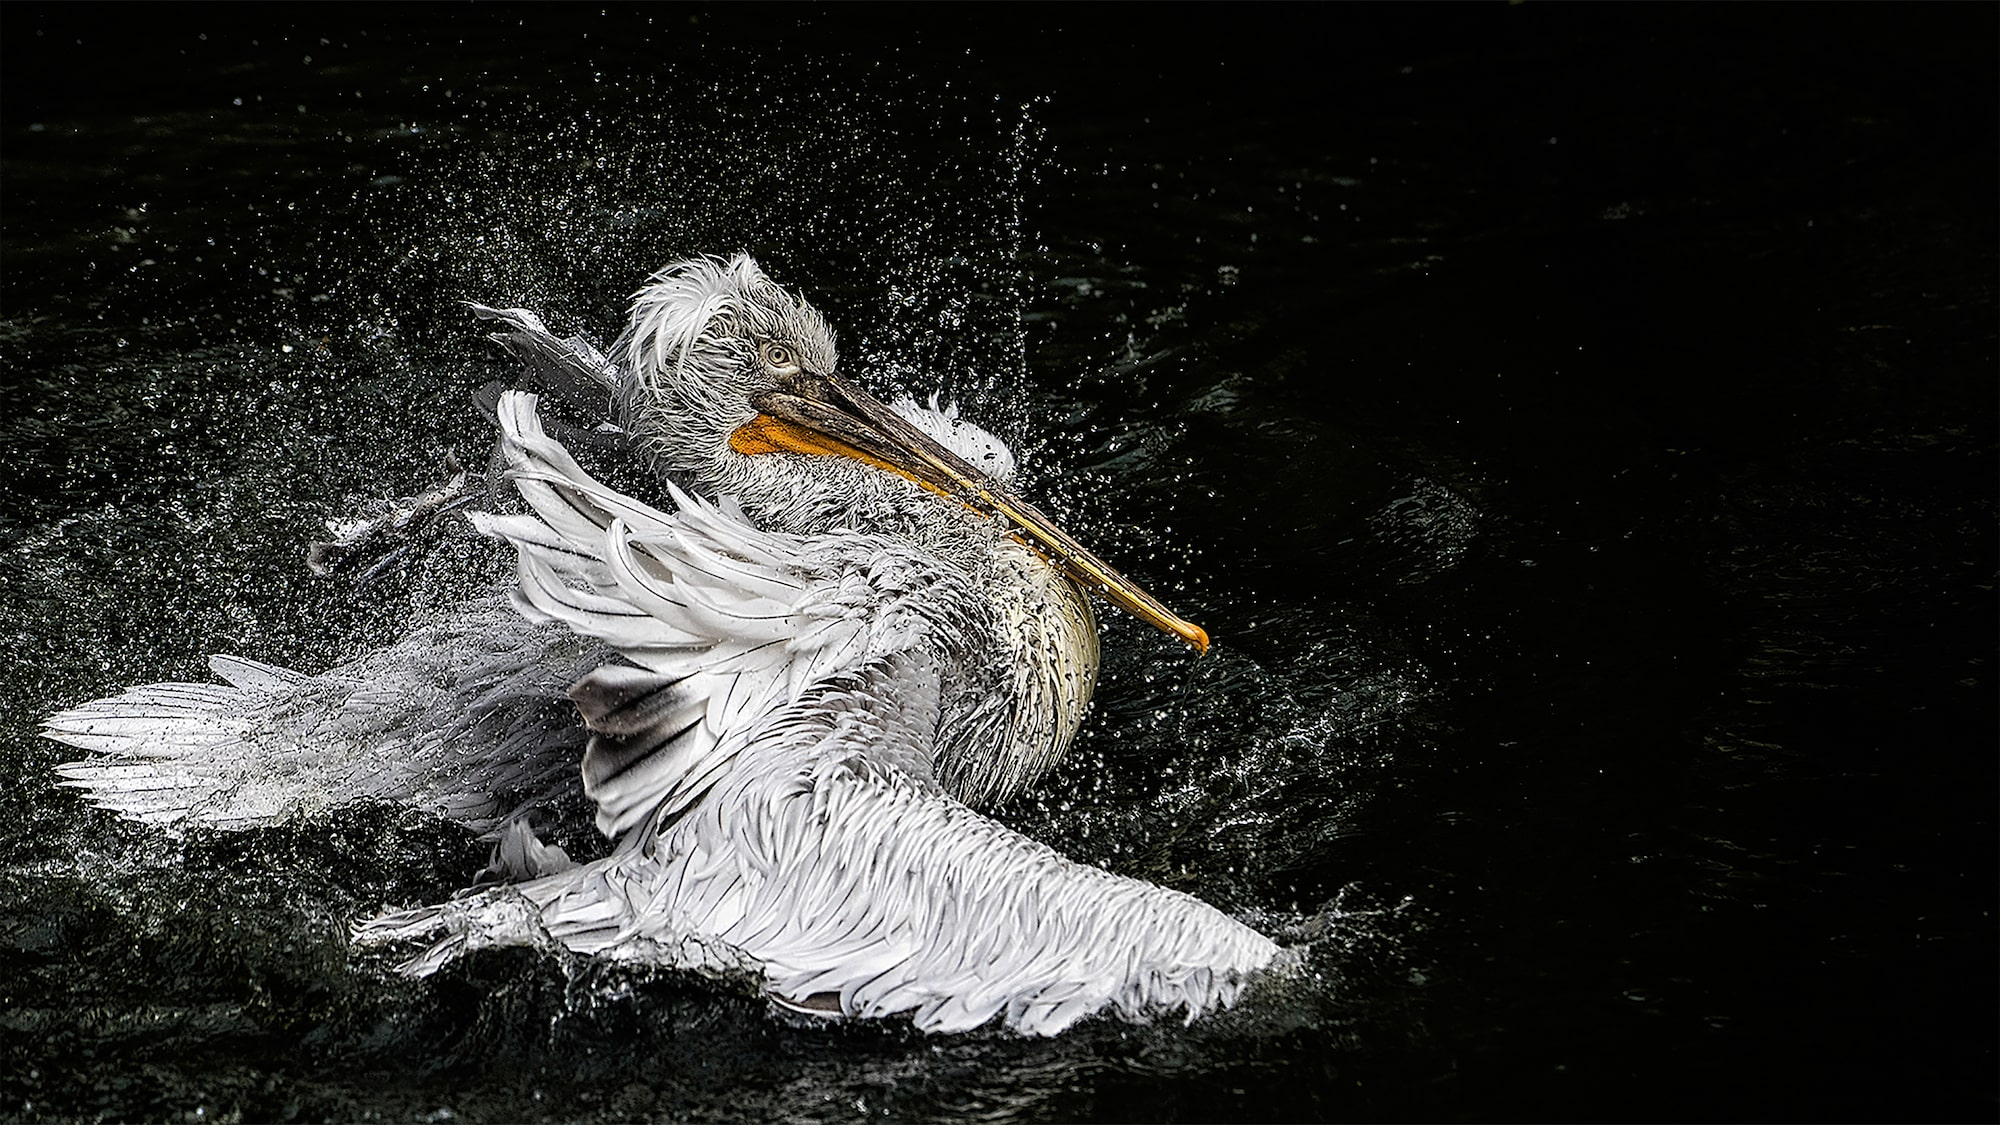 Oliver Schabenberger sony alpha 7II long beaked bird shaking itself in the water